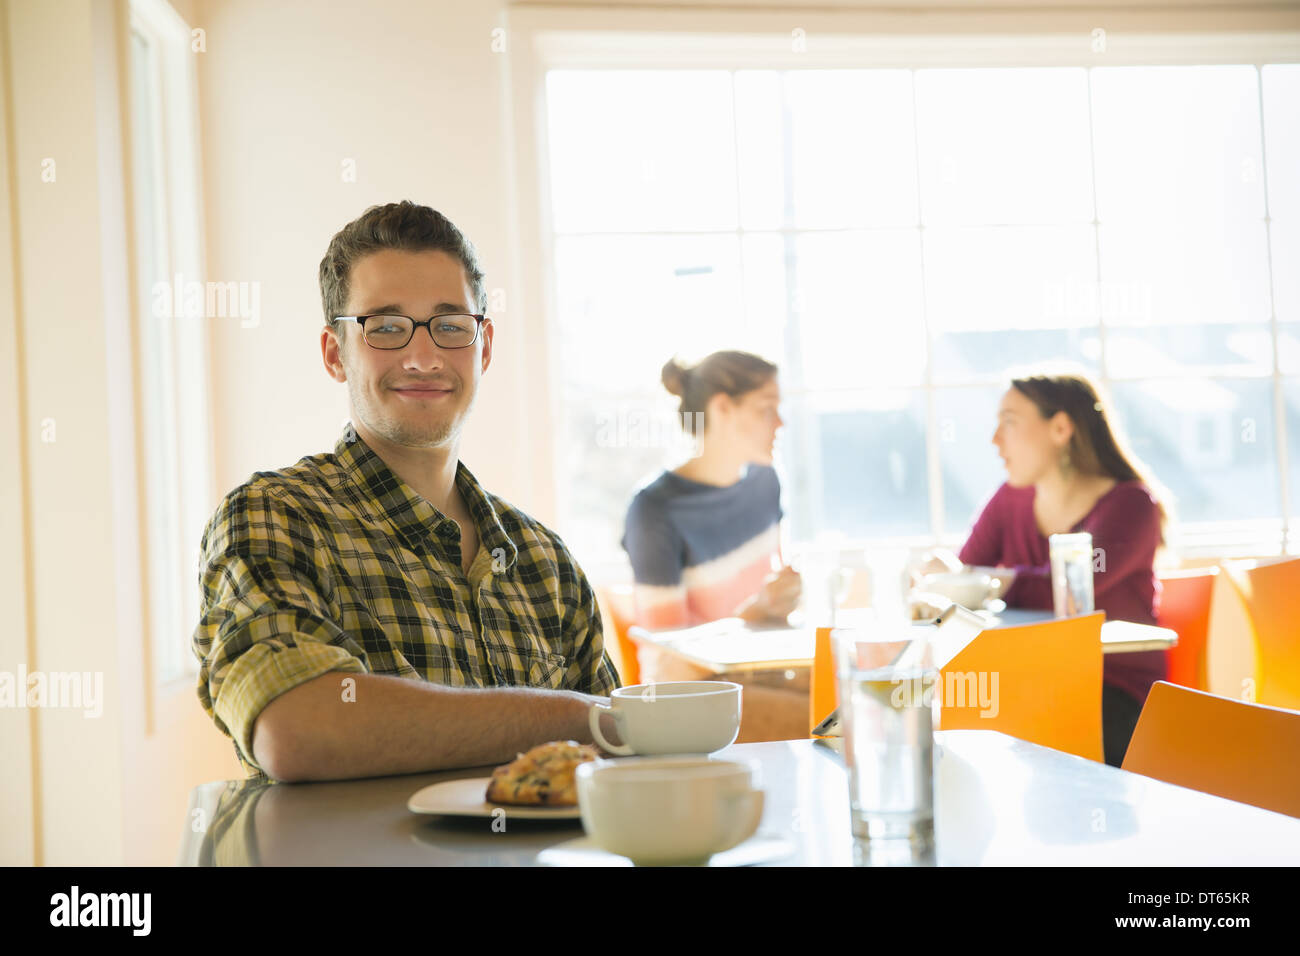 A young man sitting at a coffee shop counter, with two women in the background. Stock Photo